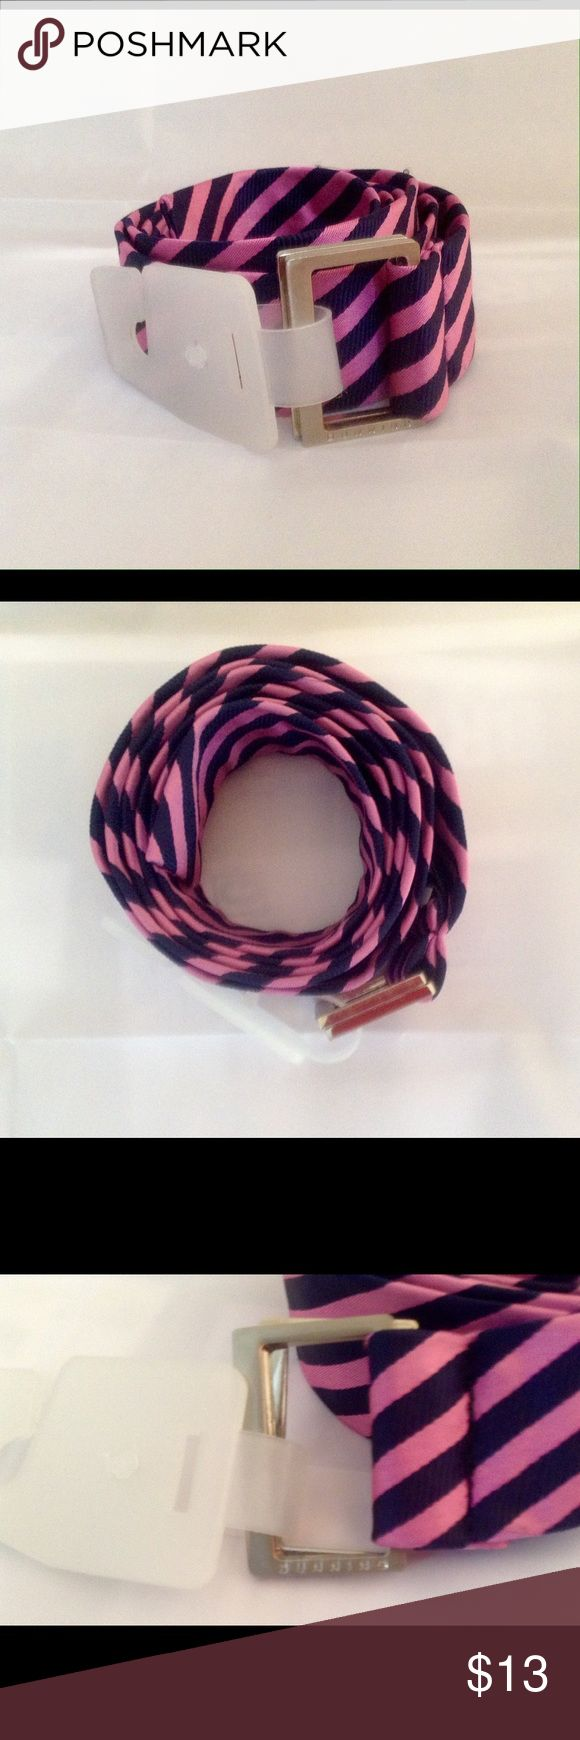 "DUNNING TIE BELT Dunning tie belt, navy blue and pink, measures 51"" in length, size large. Dunning Accessories Belts"